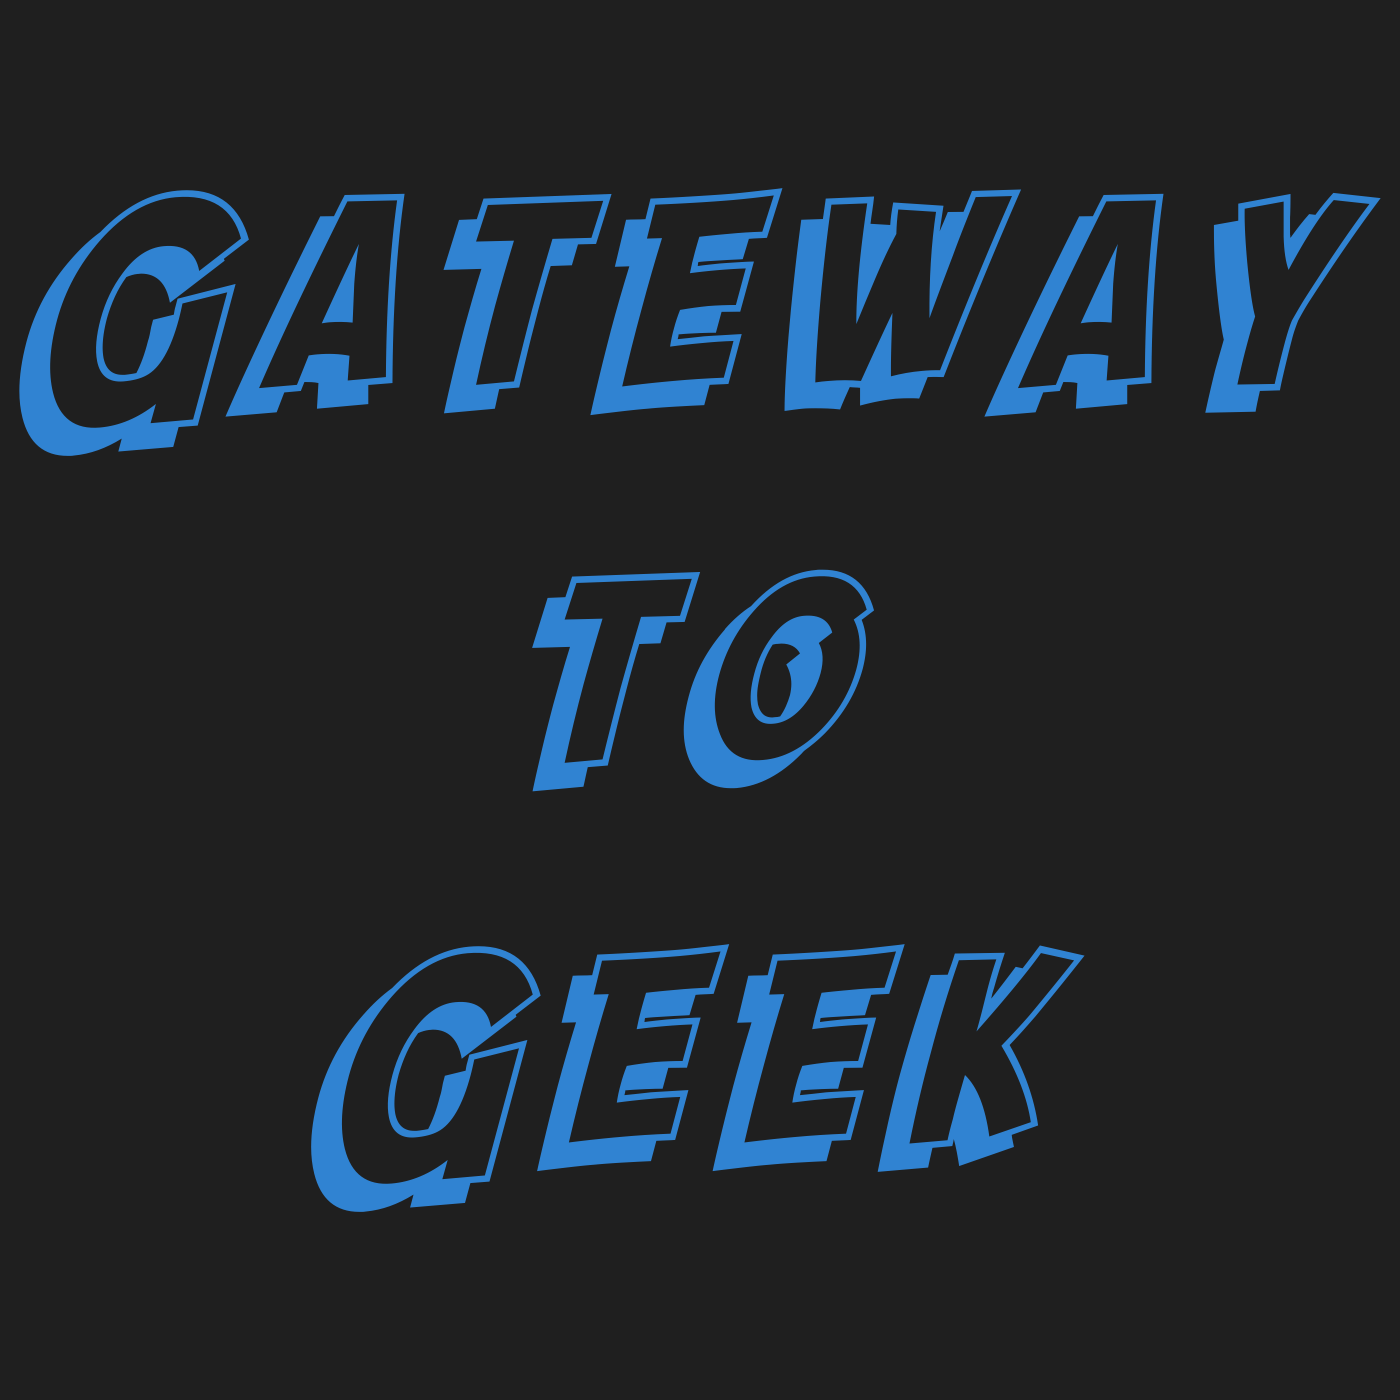 Gateway to Geek